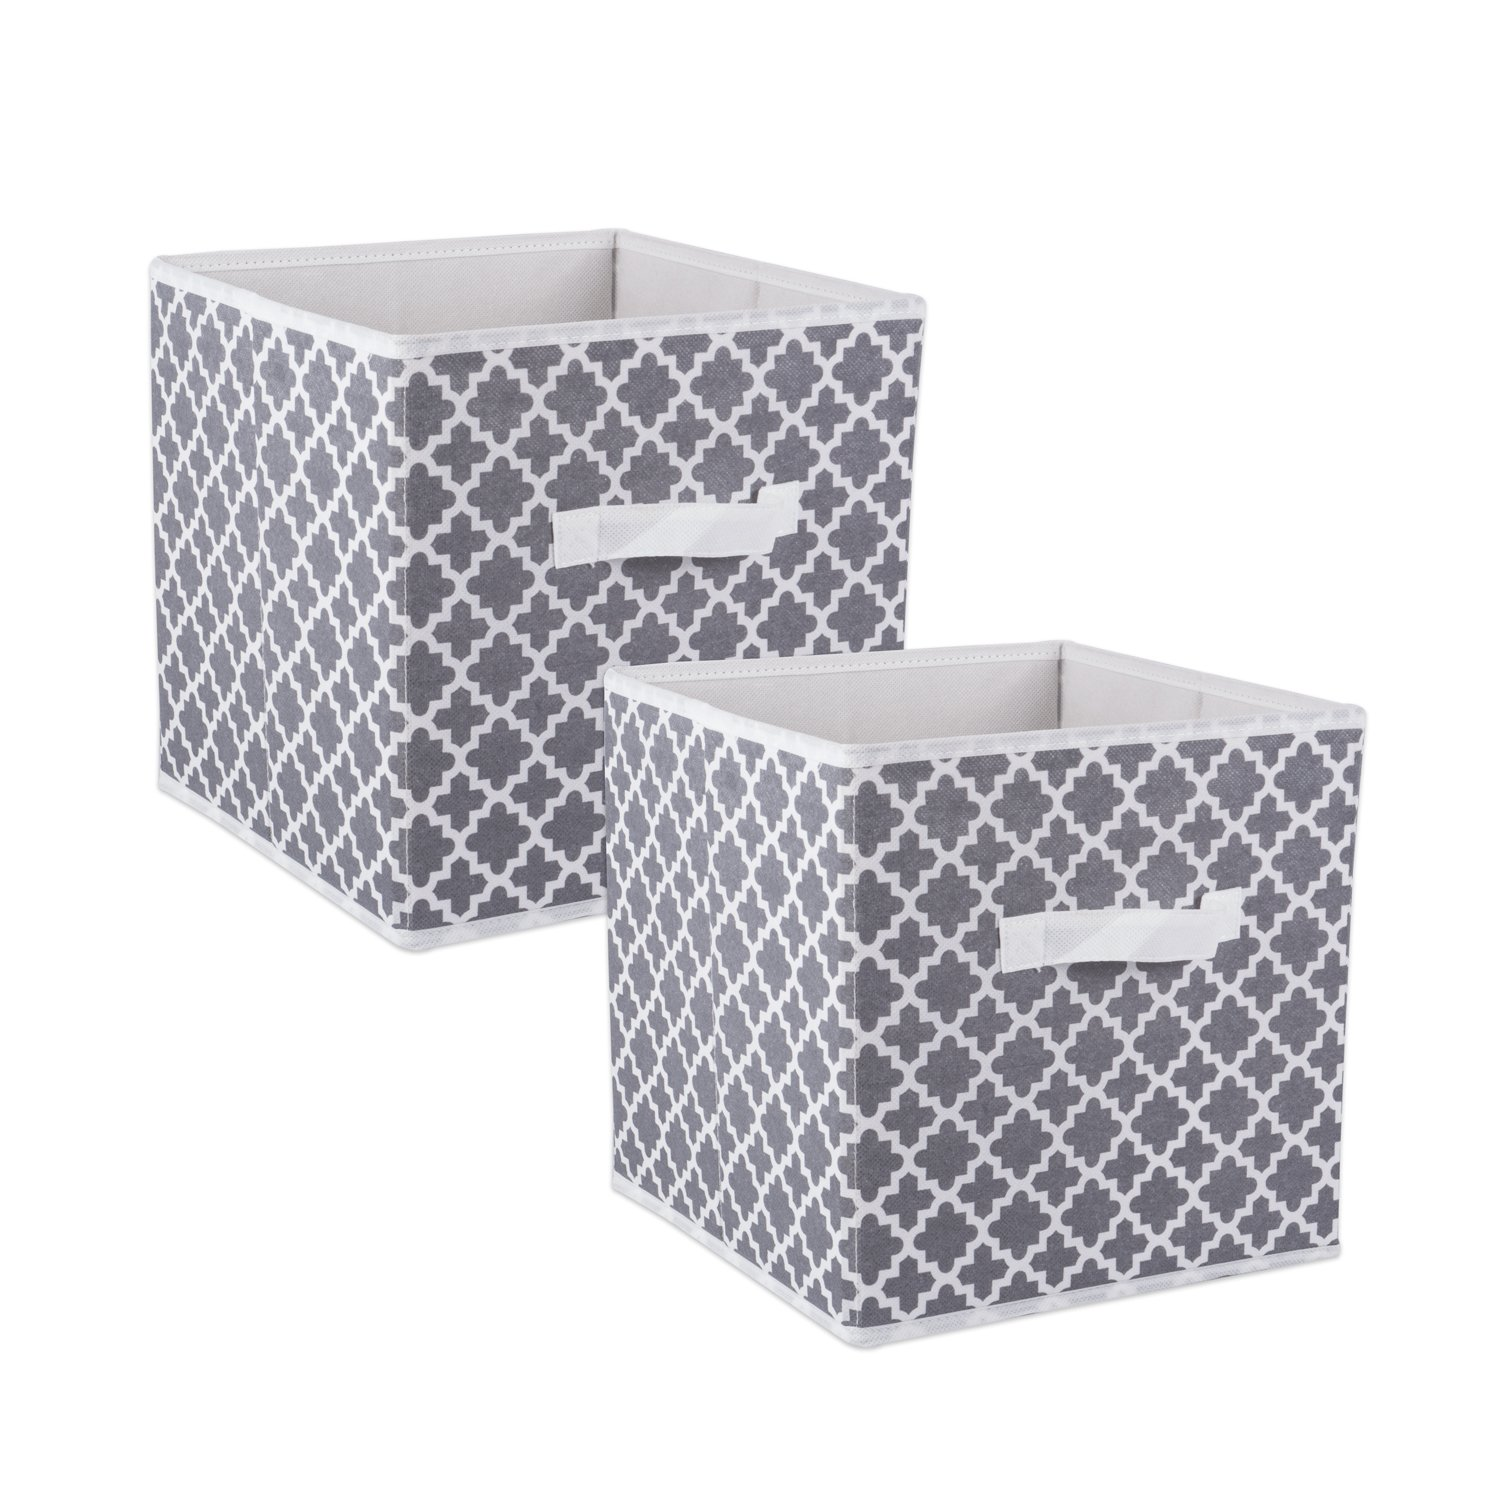 DII Fabric Storage Bins for Nursery, Offices, & Home Organization, Containers Are Made To Fit Standard Cube Organizers (11x11x11'') Lattice Gray - Set of 2